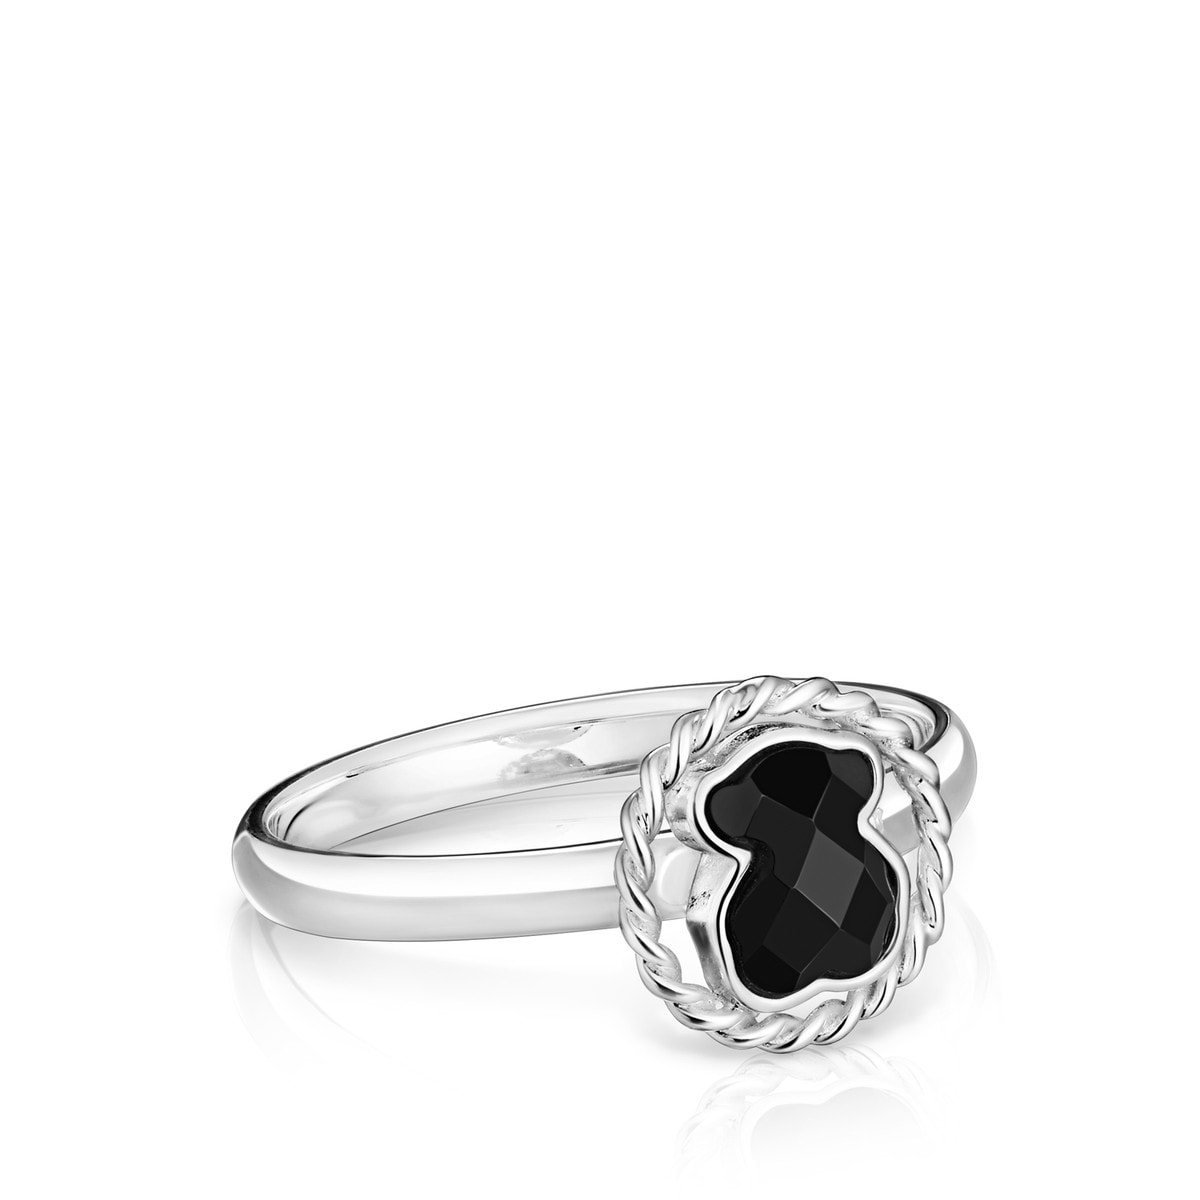 Silver TOUS Color Ring with Onyx